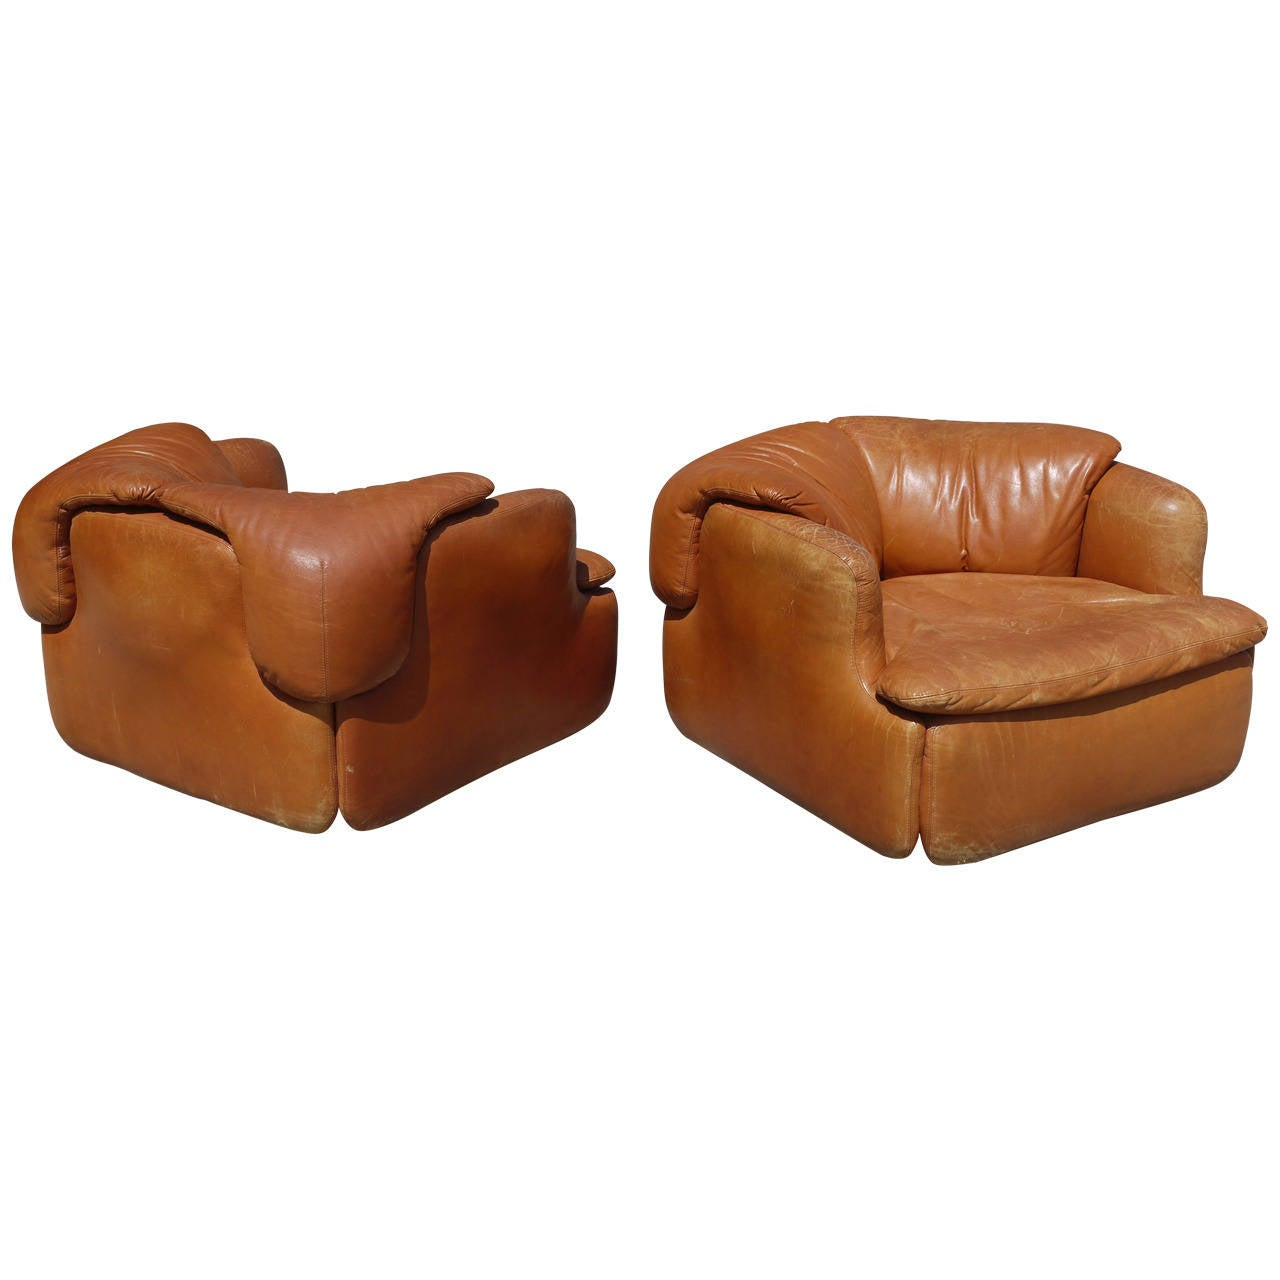 Rare Pair of Leather Chairs by Alberto Rosselli for Saporiti